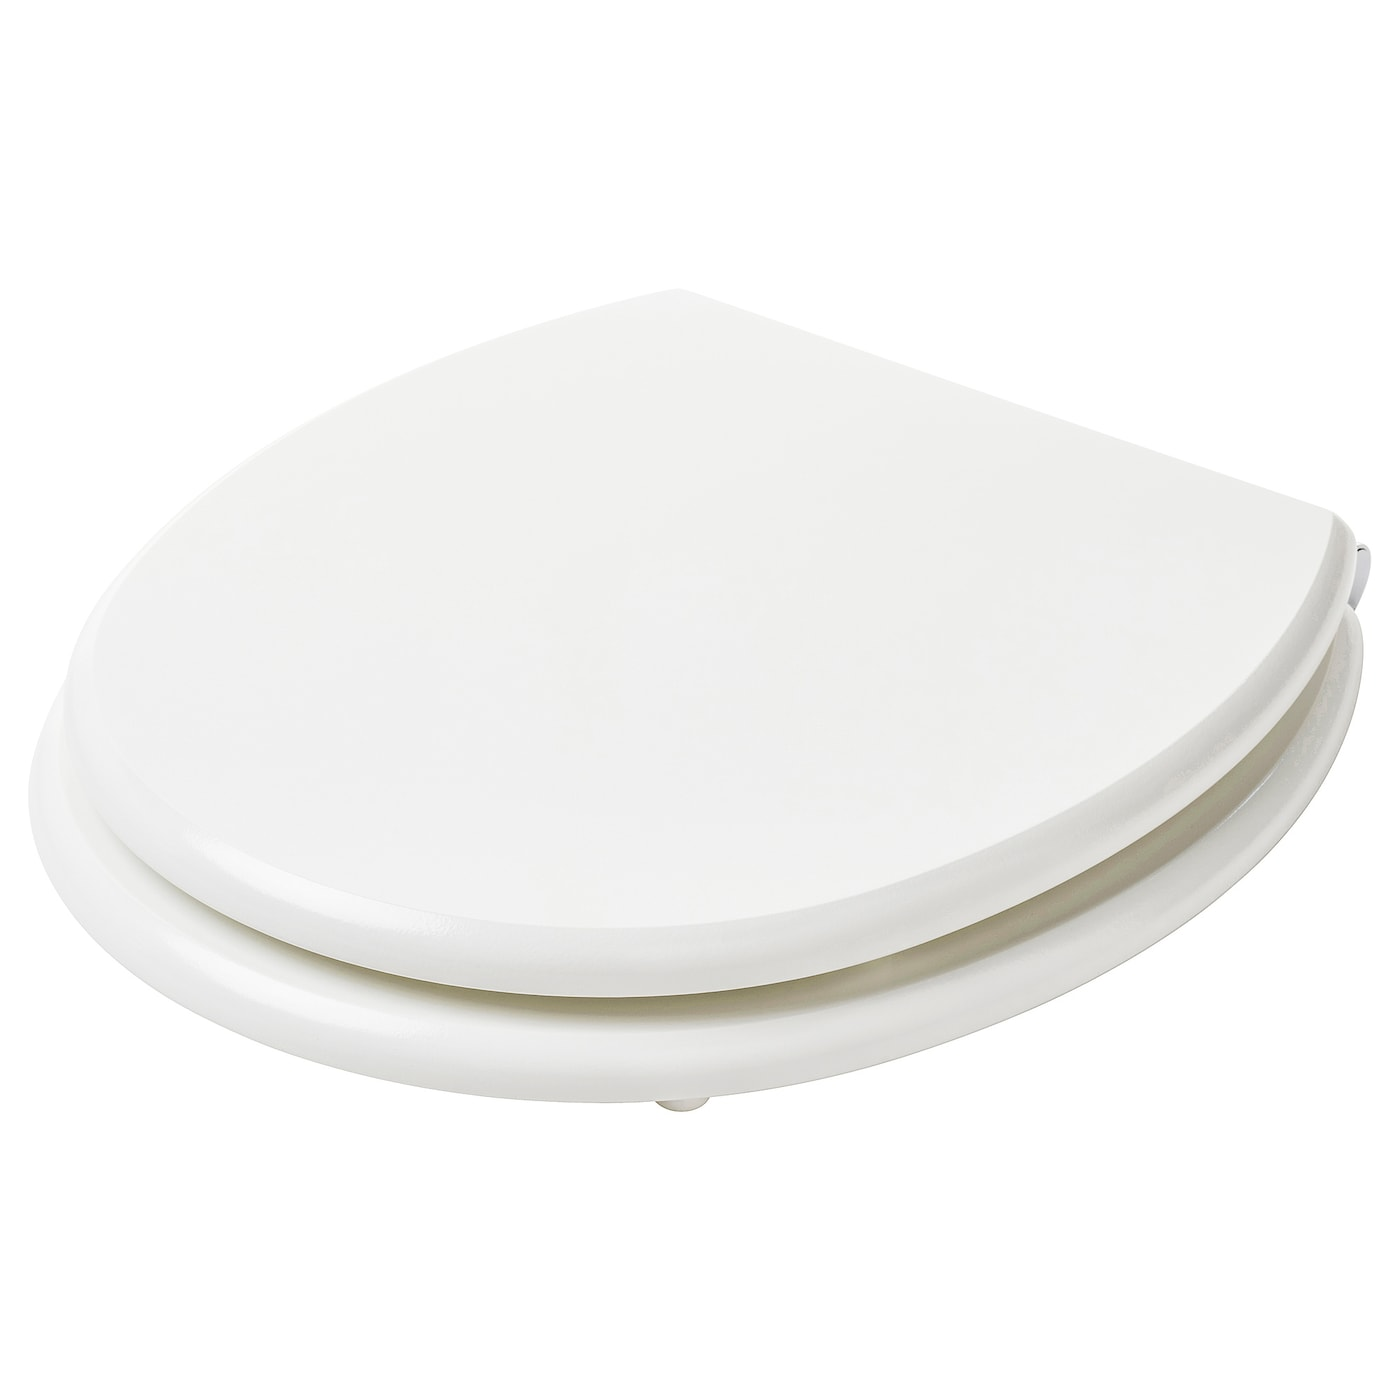 Fantastic Toilet Seat Kullarna White Caraccident5 Cool Chair Designs And Ideas Caraccident5Info